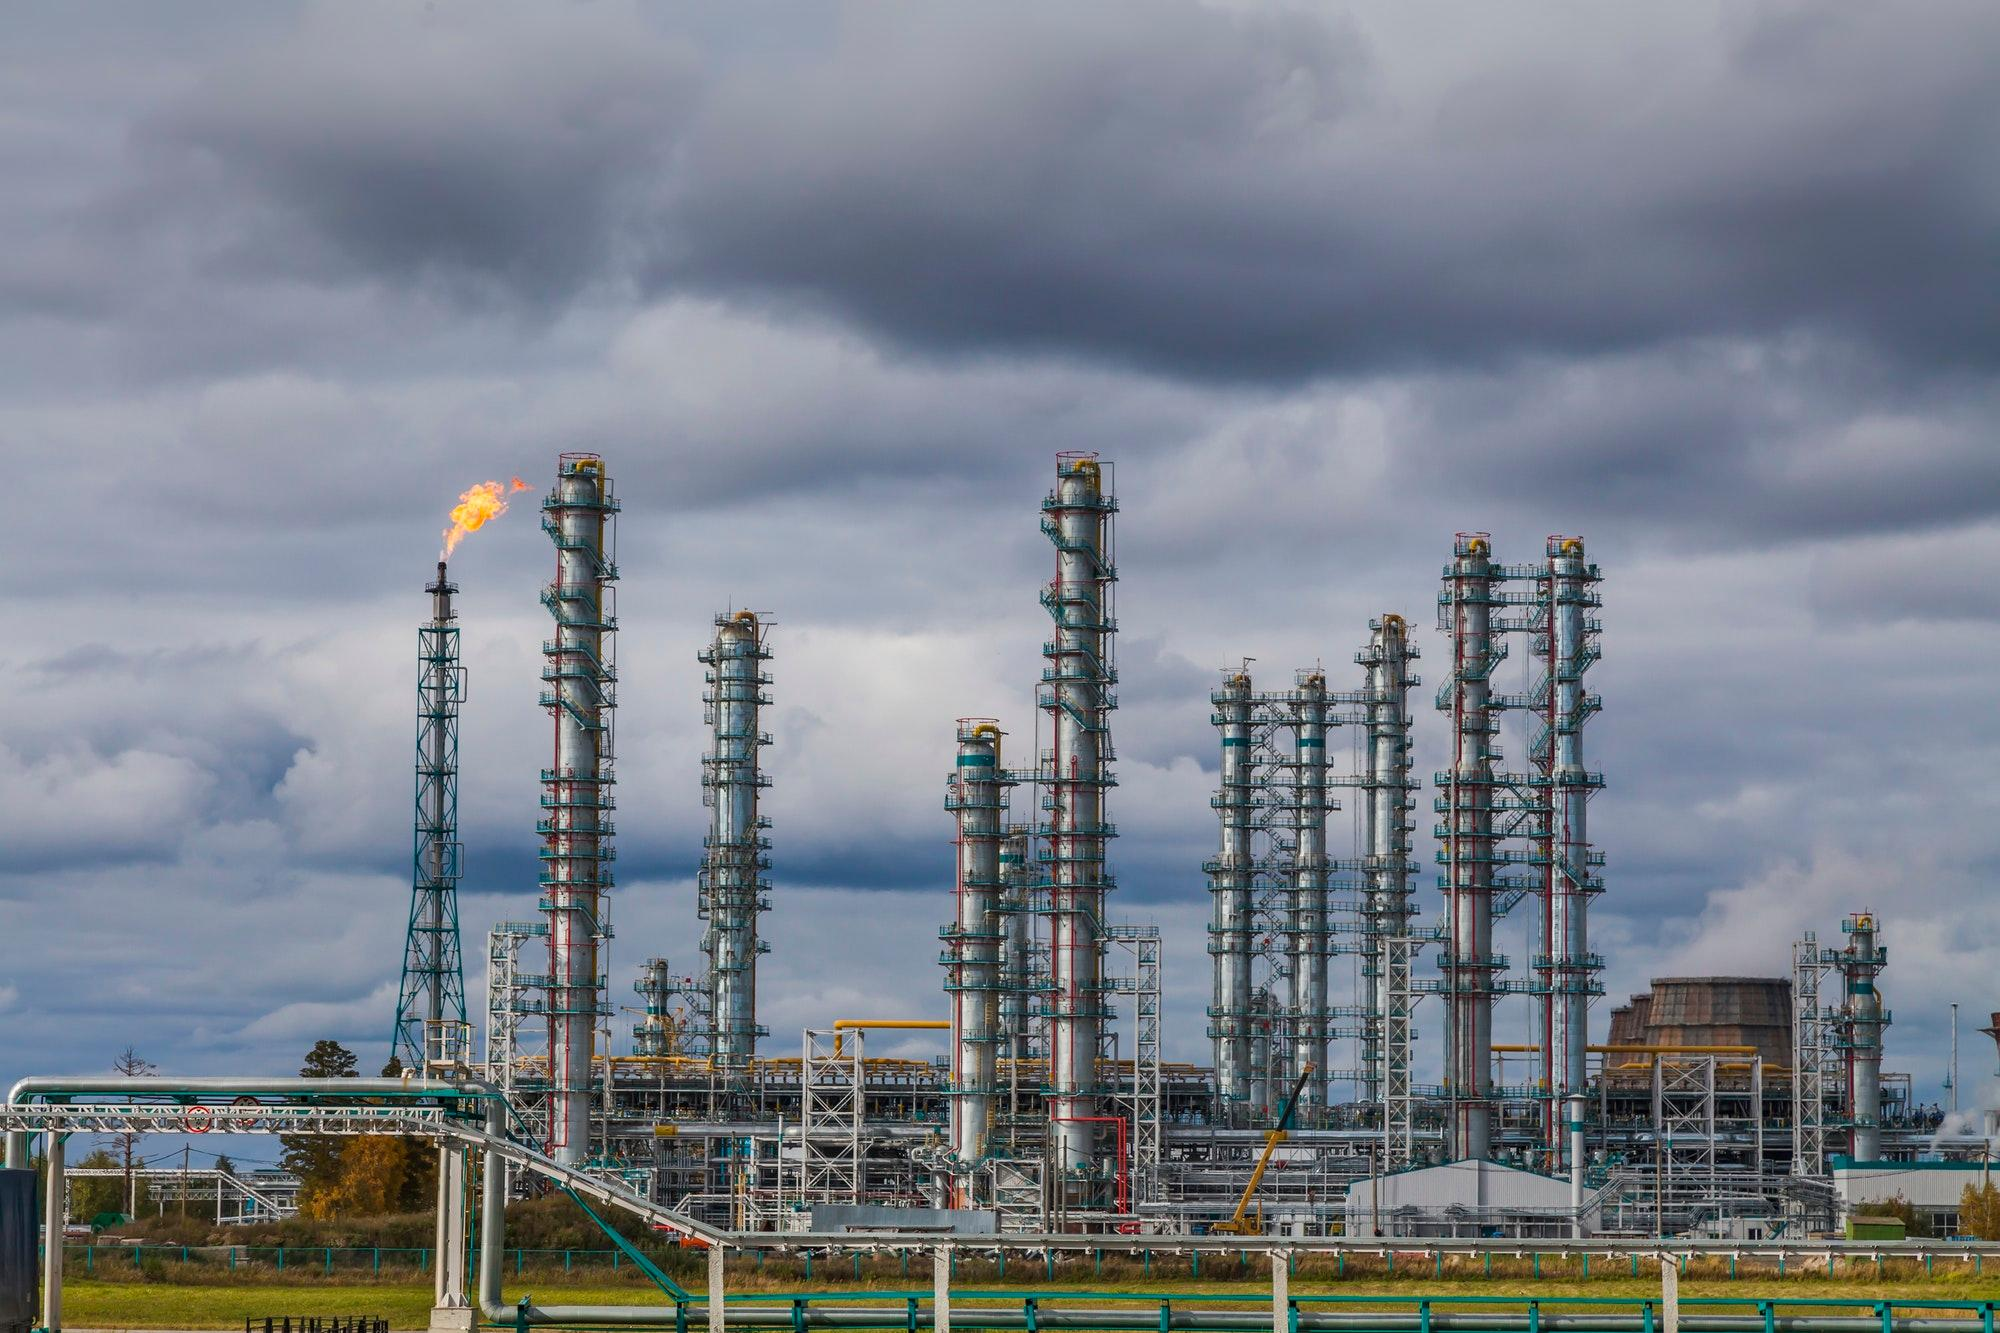 uploads///oil refinery factory at the cloudy sky petrochemical plant petroleum